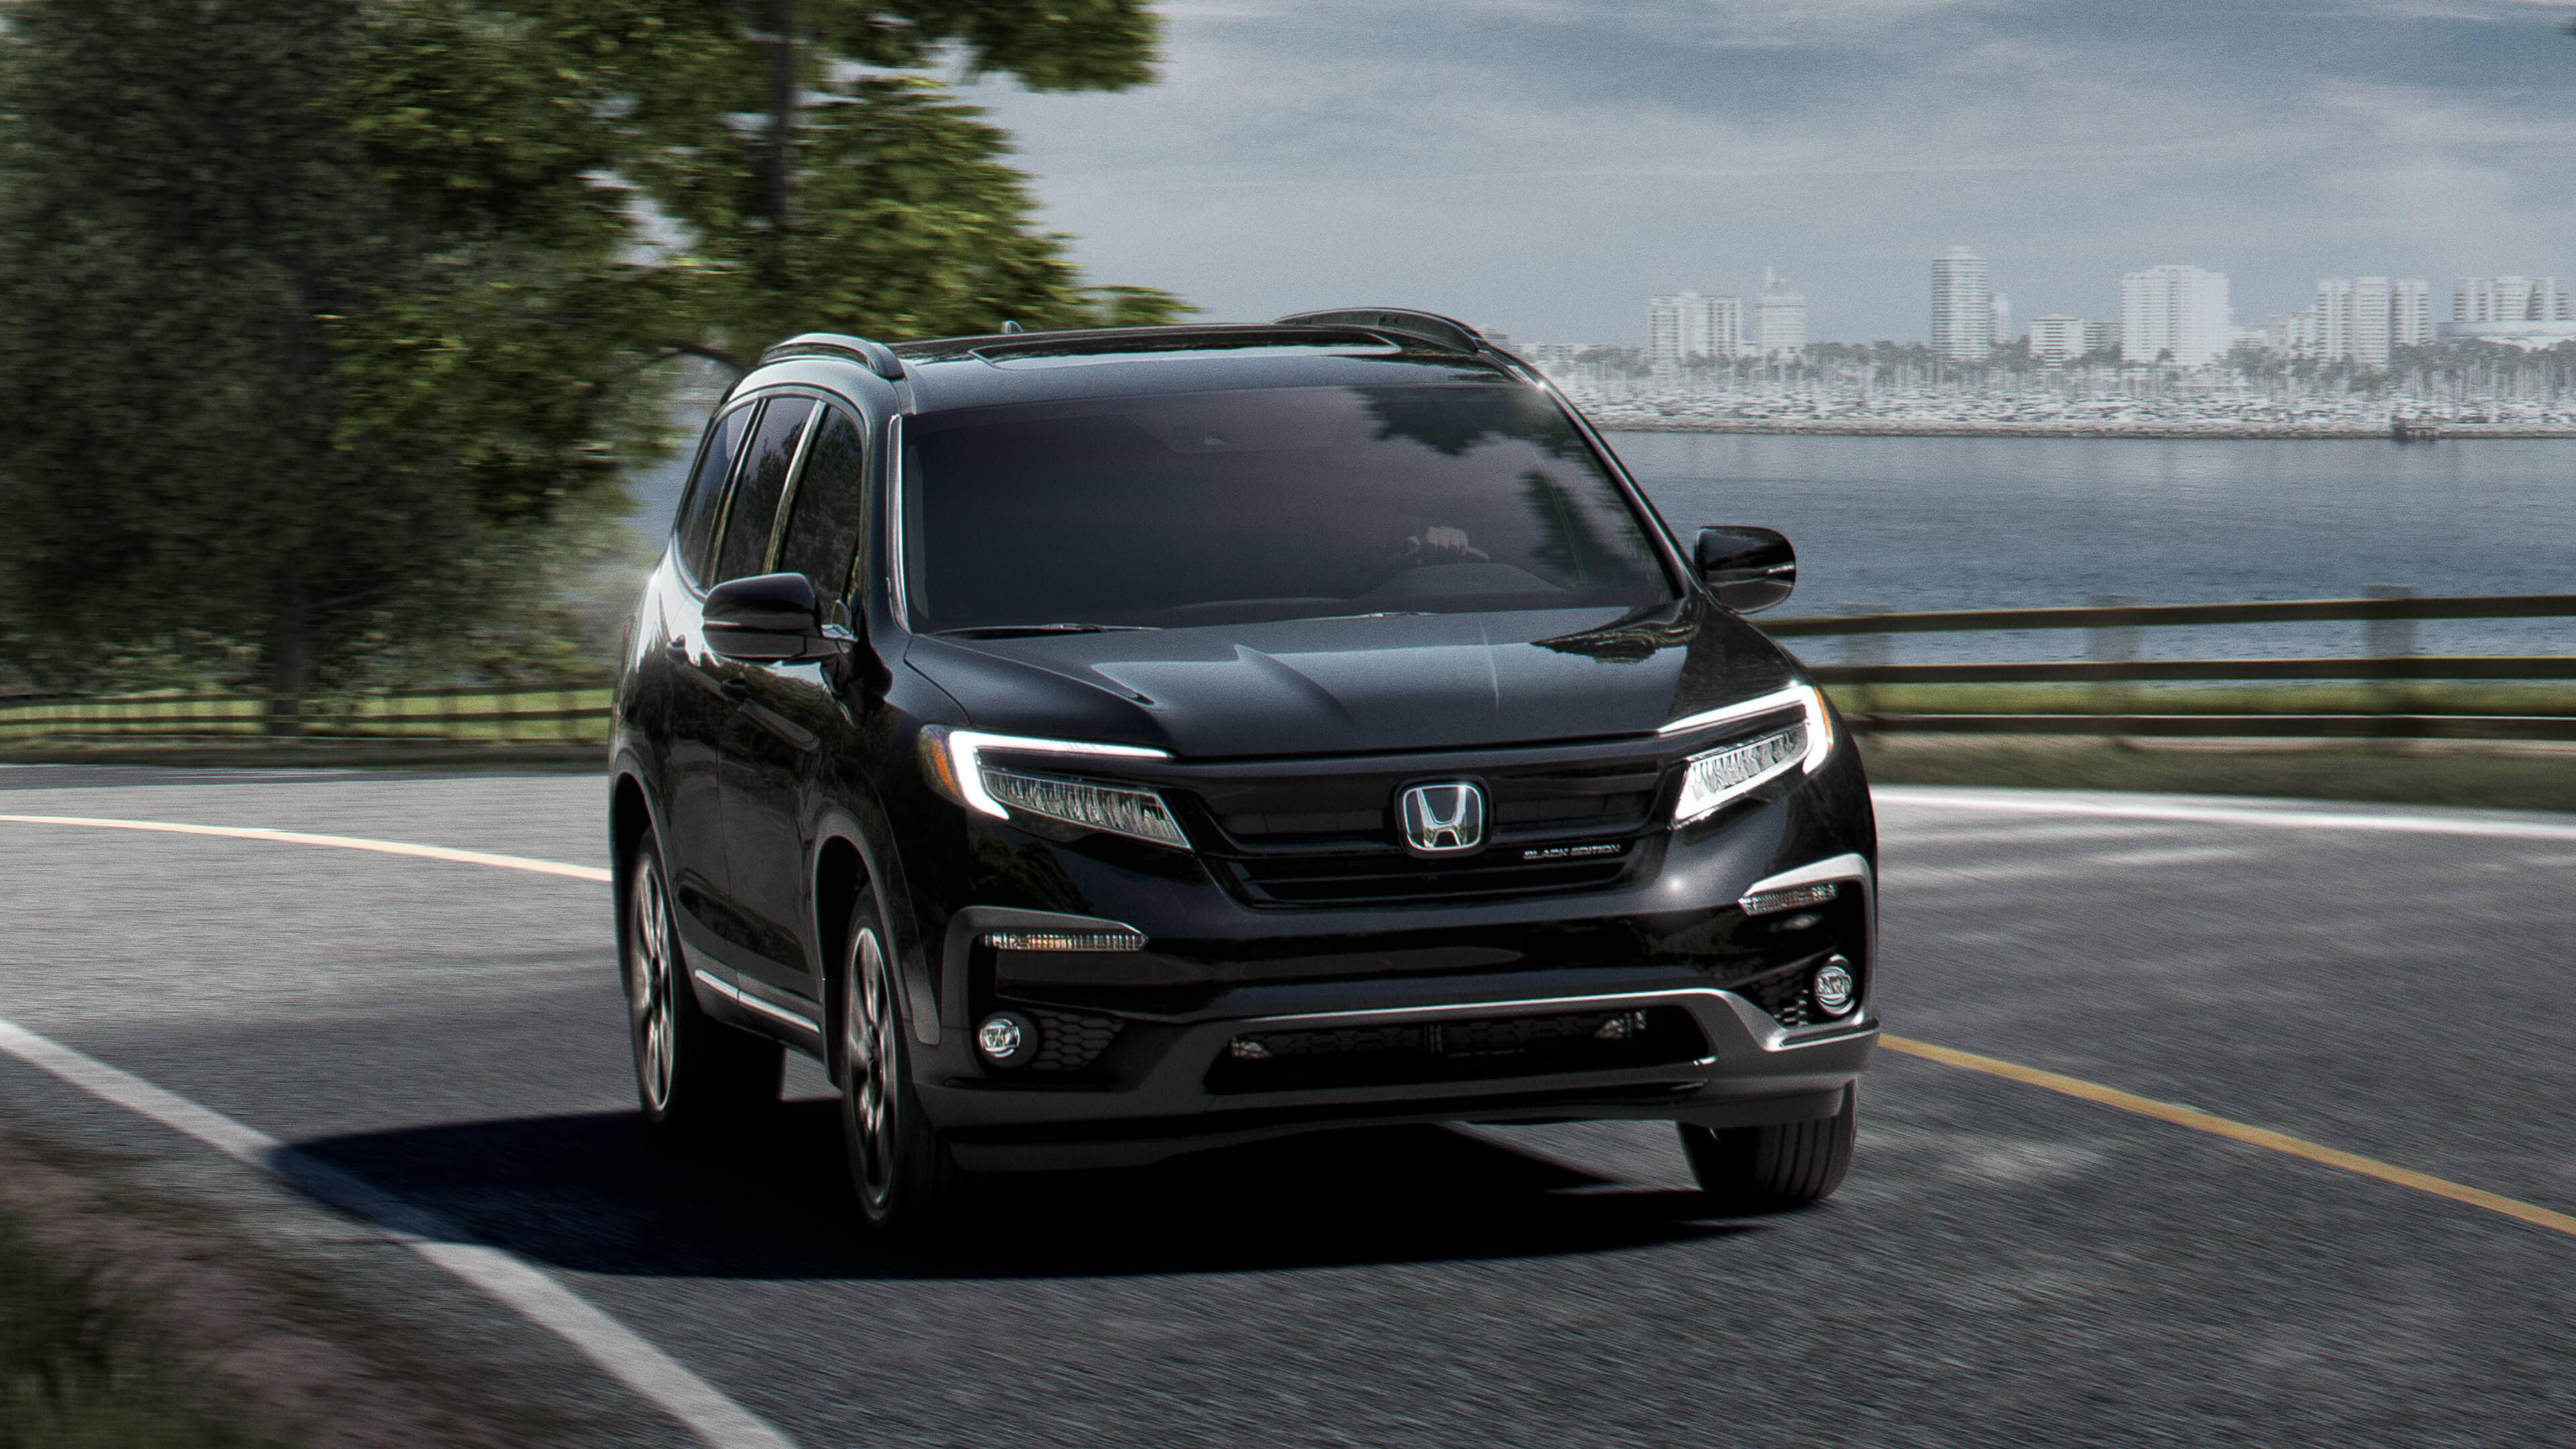 2020 Honda Pilot Exterior at Richmond Hill Honda in Toronto and the GTA